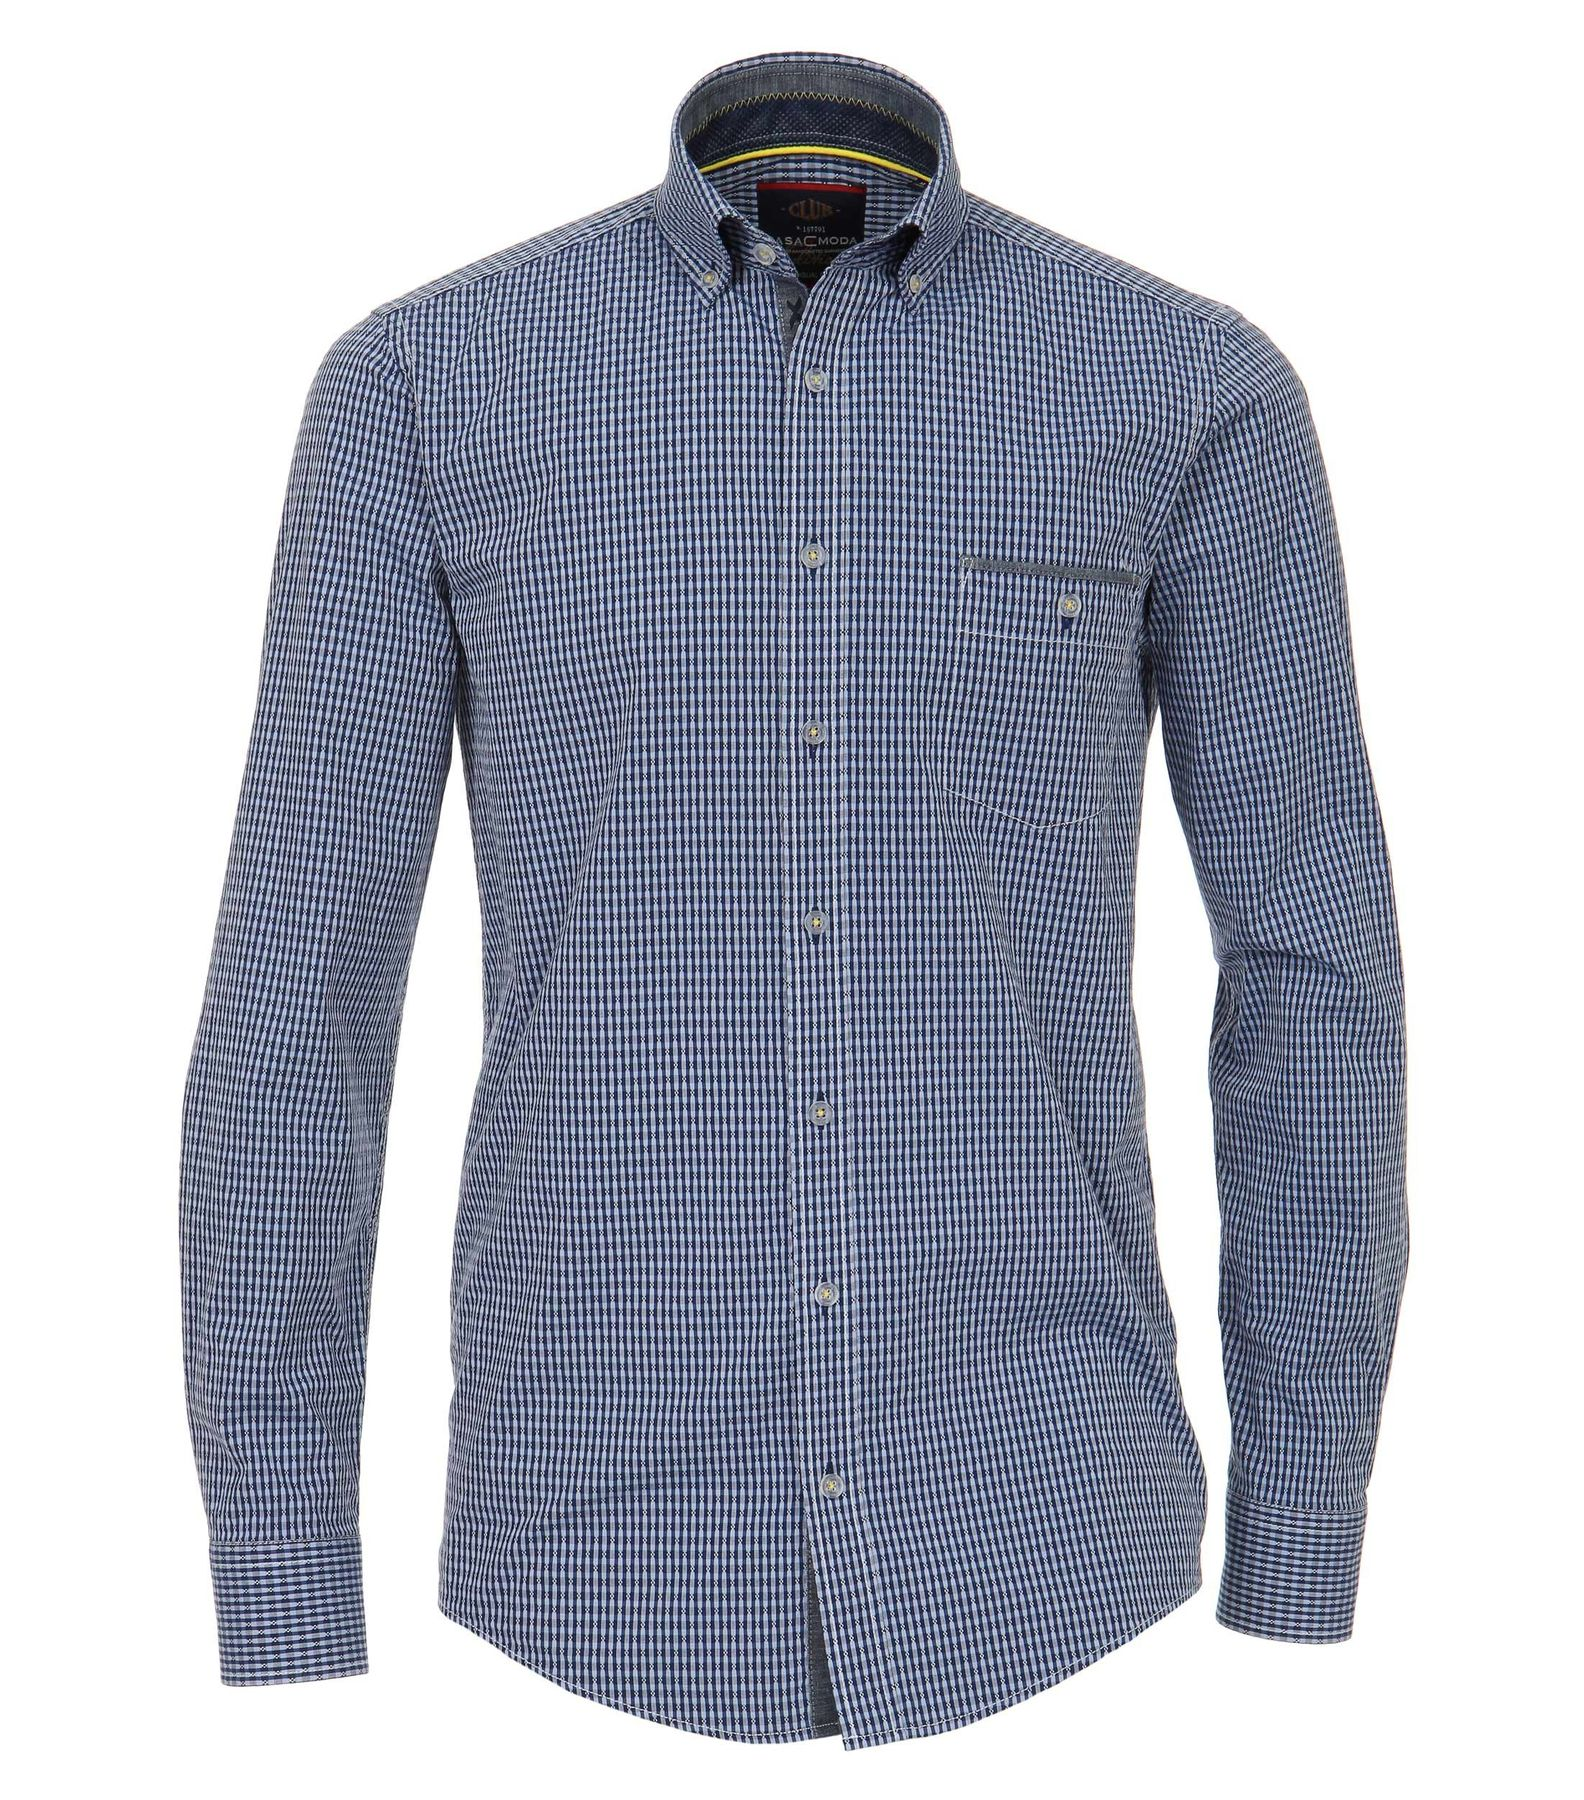 Casa Moda - Casual Fit - Dobby Herren Hemd kariert mit Button Down-Kragen in blau (482898300)